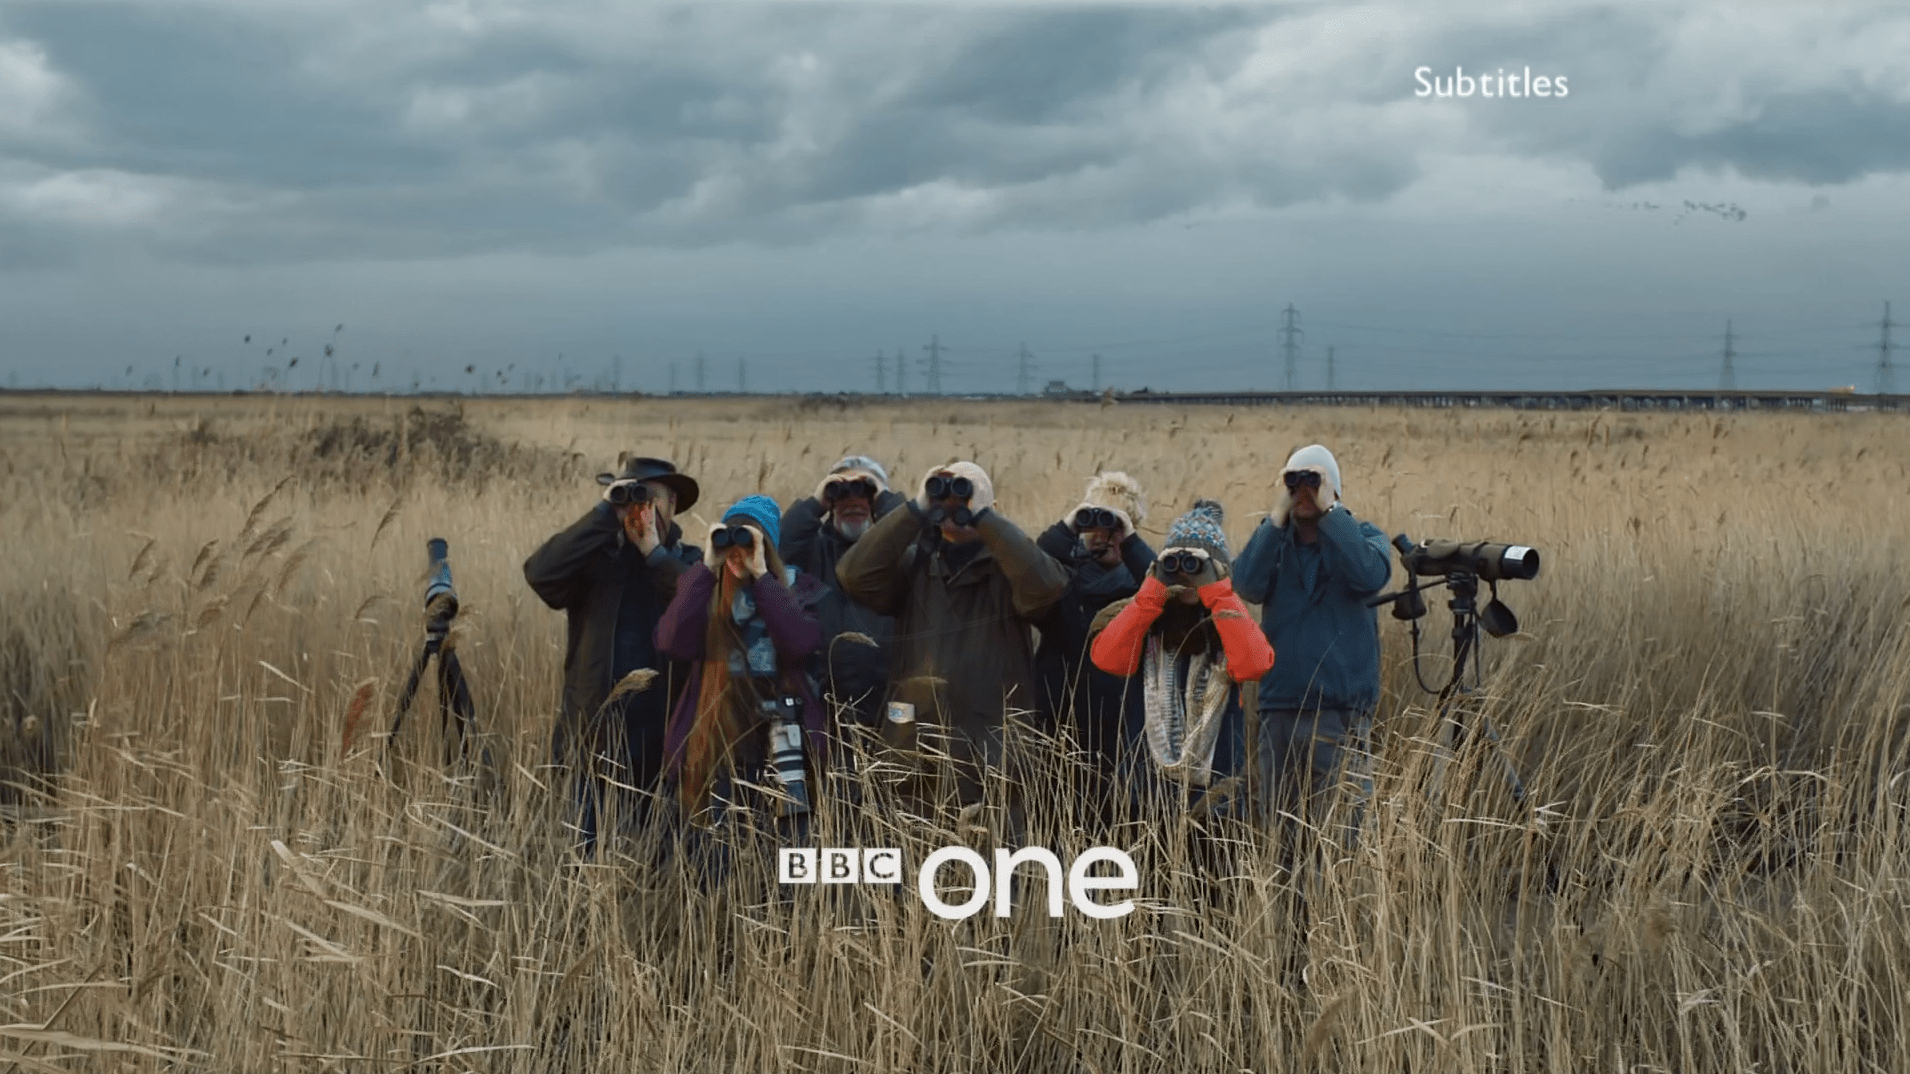 PICTURED: BBC One ident - Birdwatchers, Rainham Marshes - Version 1.